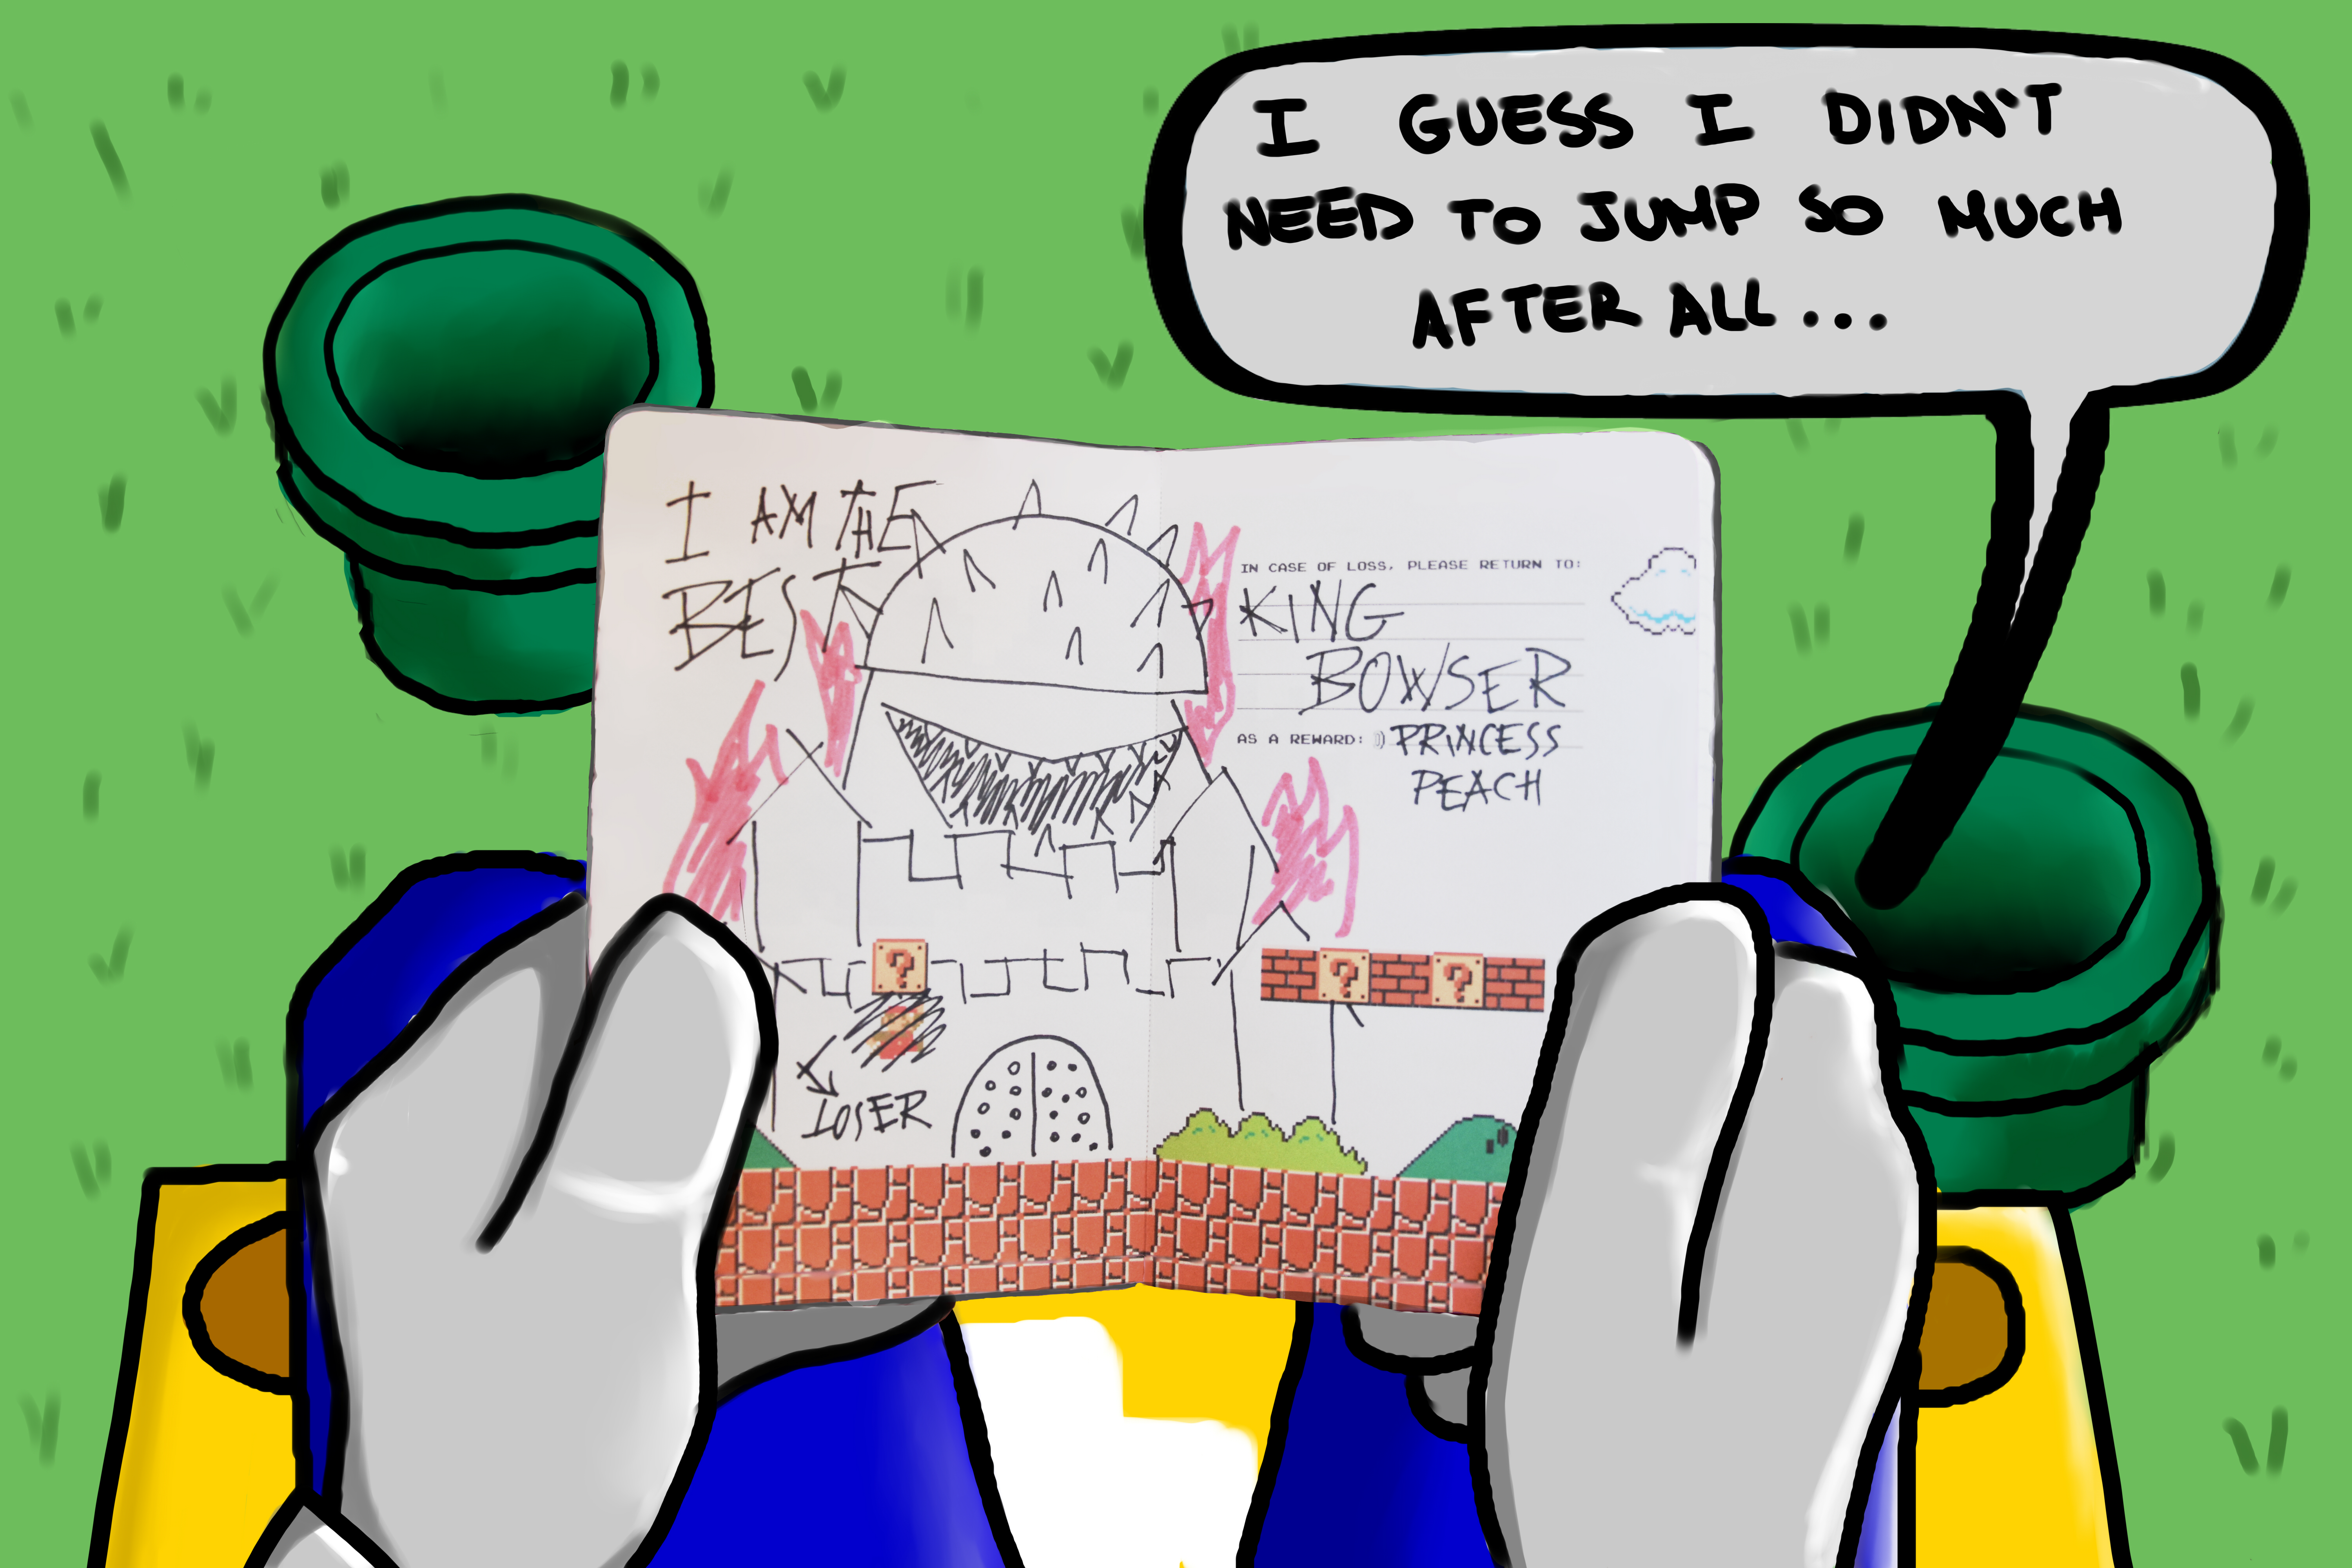 Super Mario finds Bowser's Moleskine